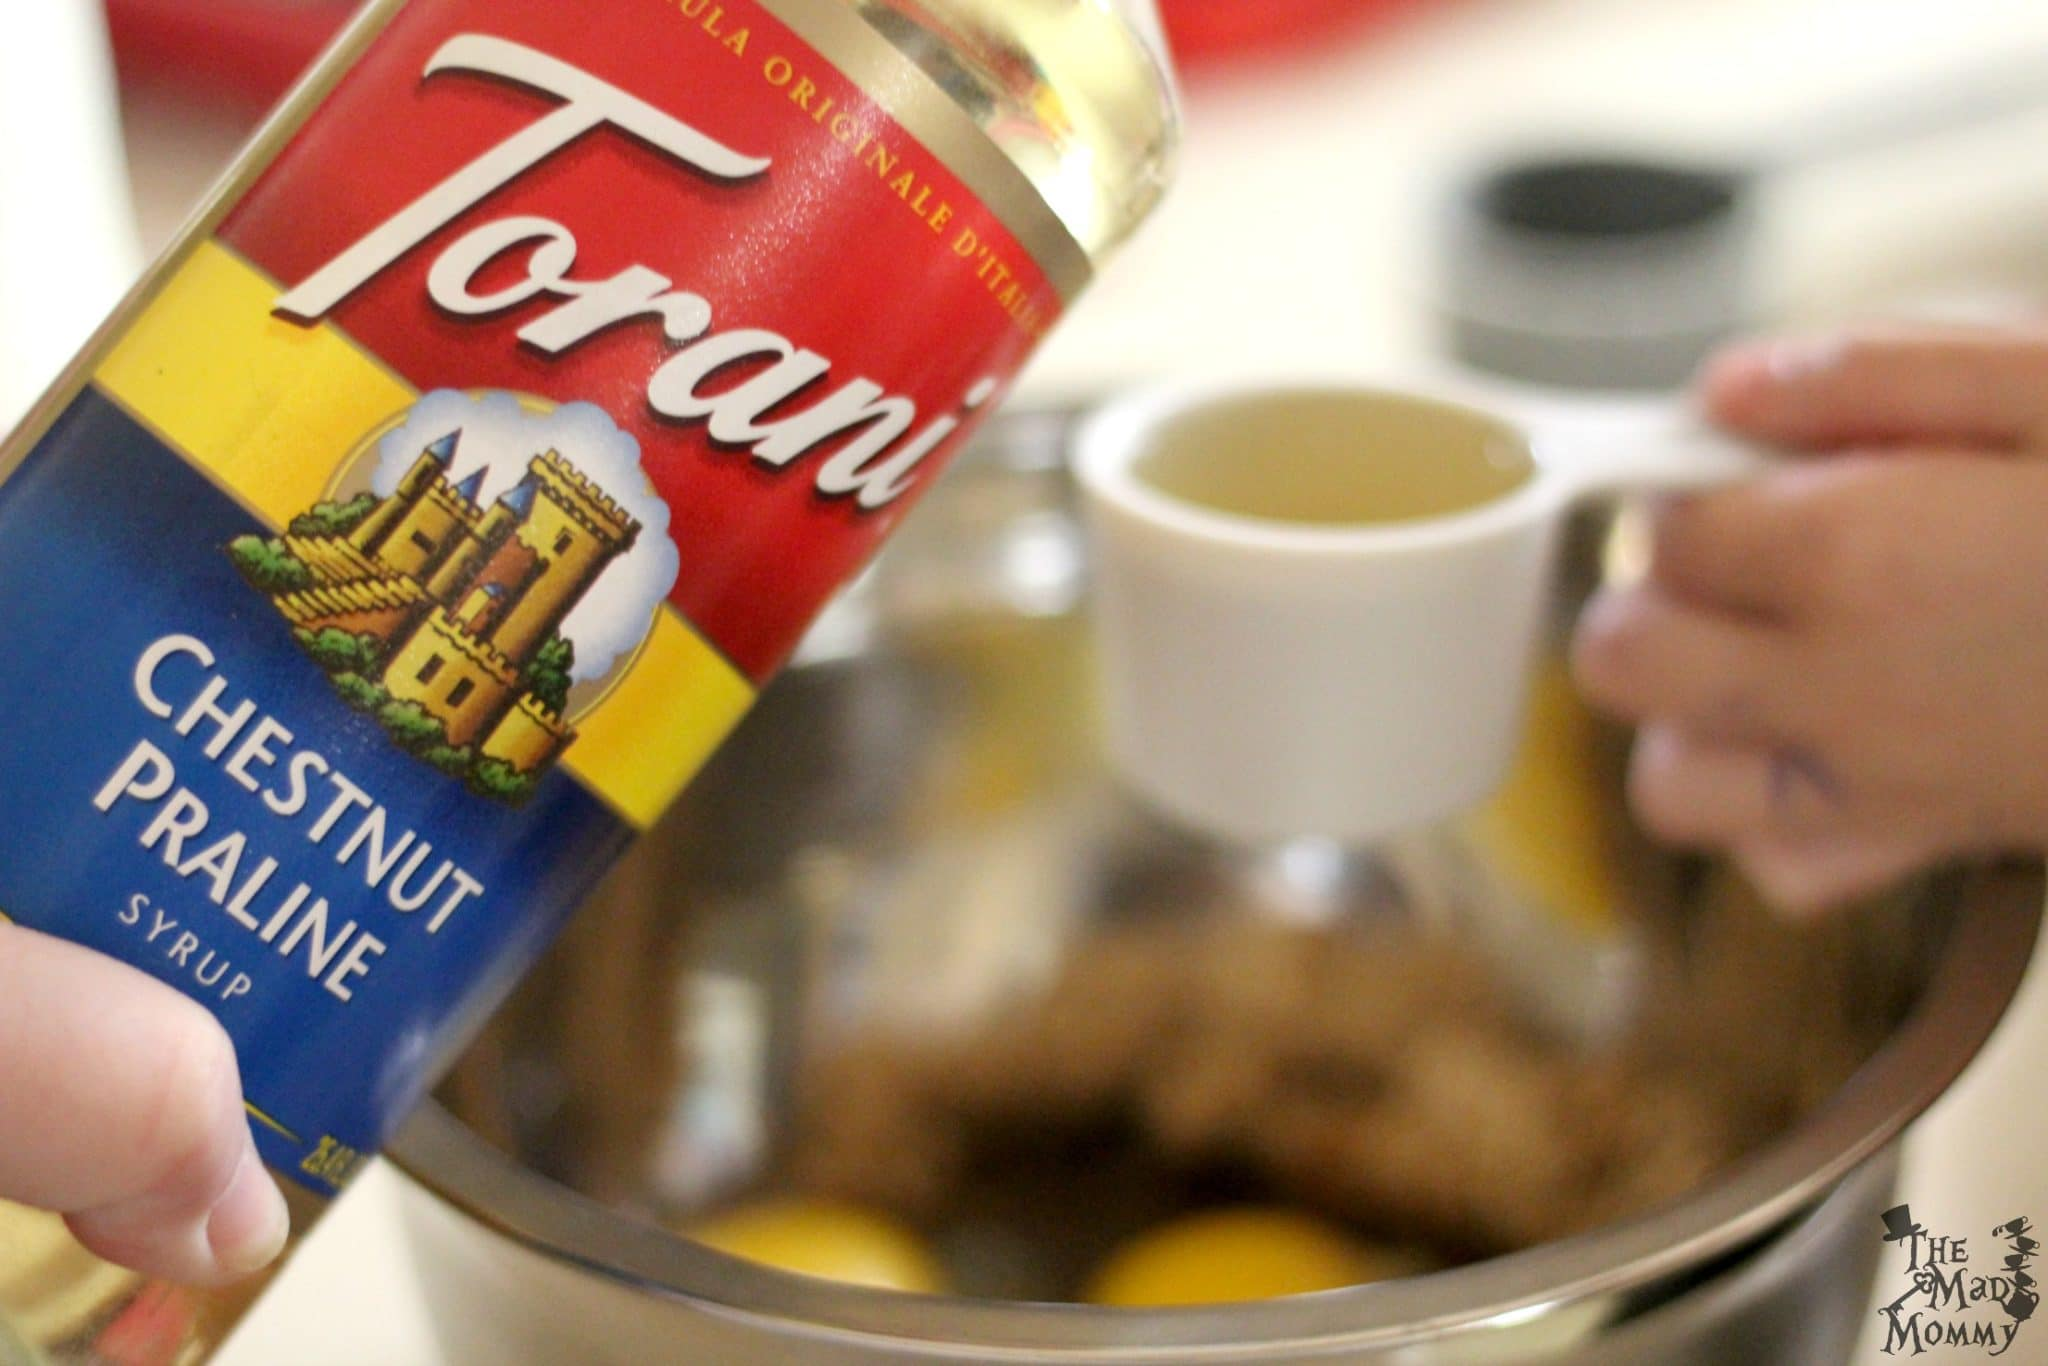 Torani announced their newest flavor this week and it is the perfect flavor to kick-off those Halloween celebrations, Chestnut Praline! #AD #AToraniHalloween